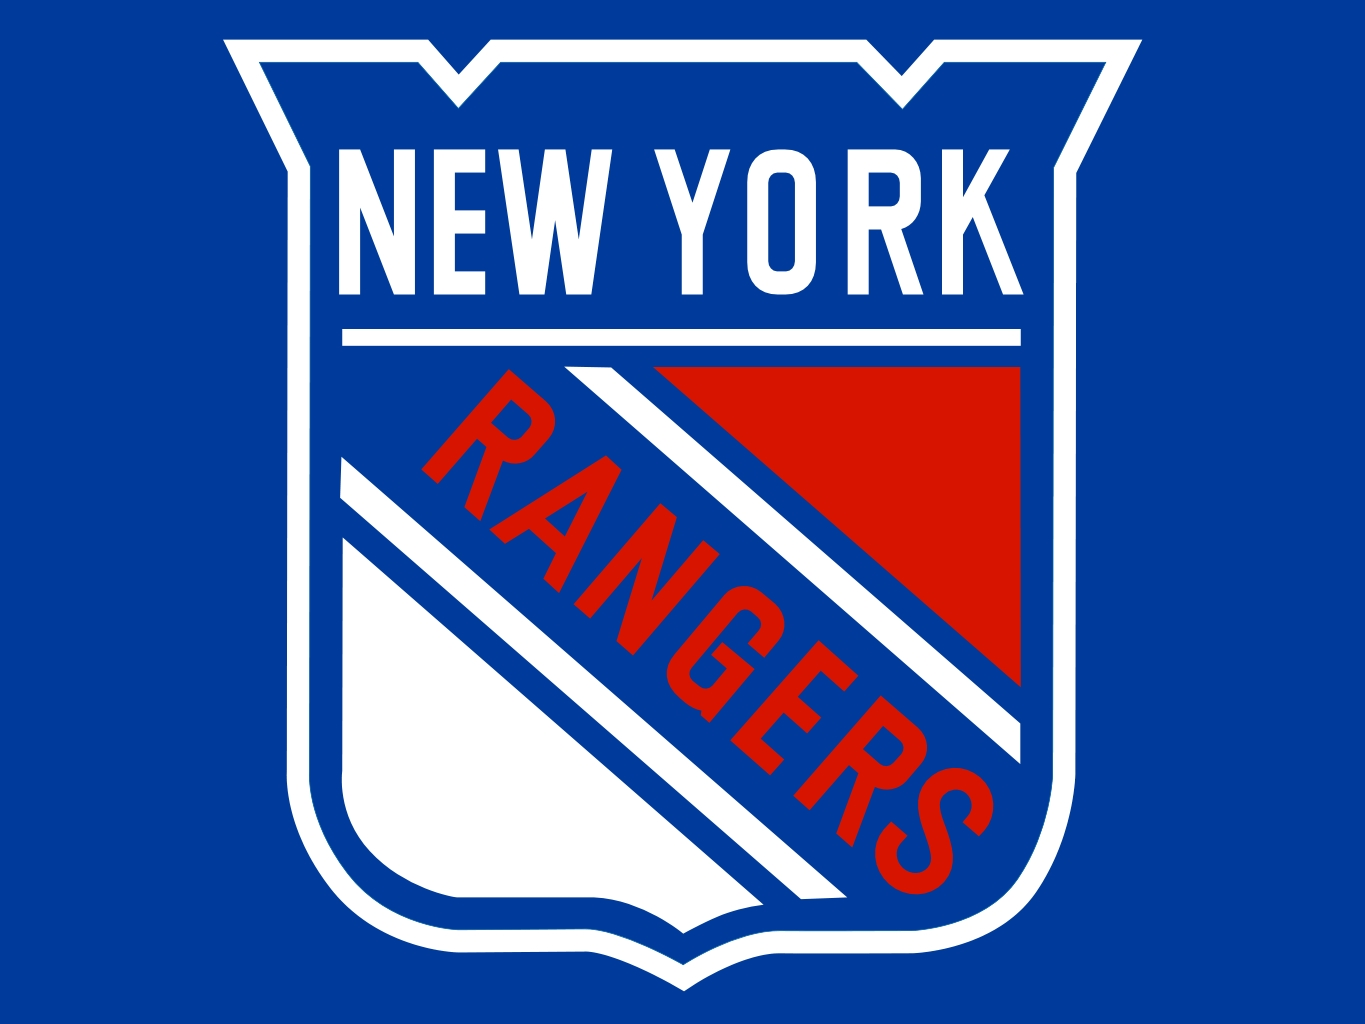 New york rangers logo clipart jpg free library New york rangers logo clipart - ClipartFest jpg free library